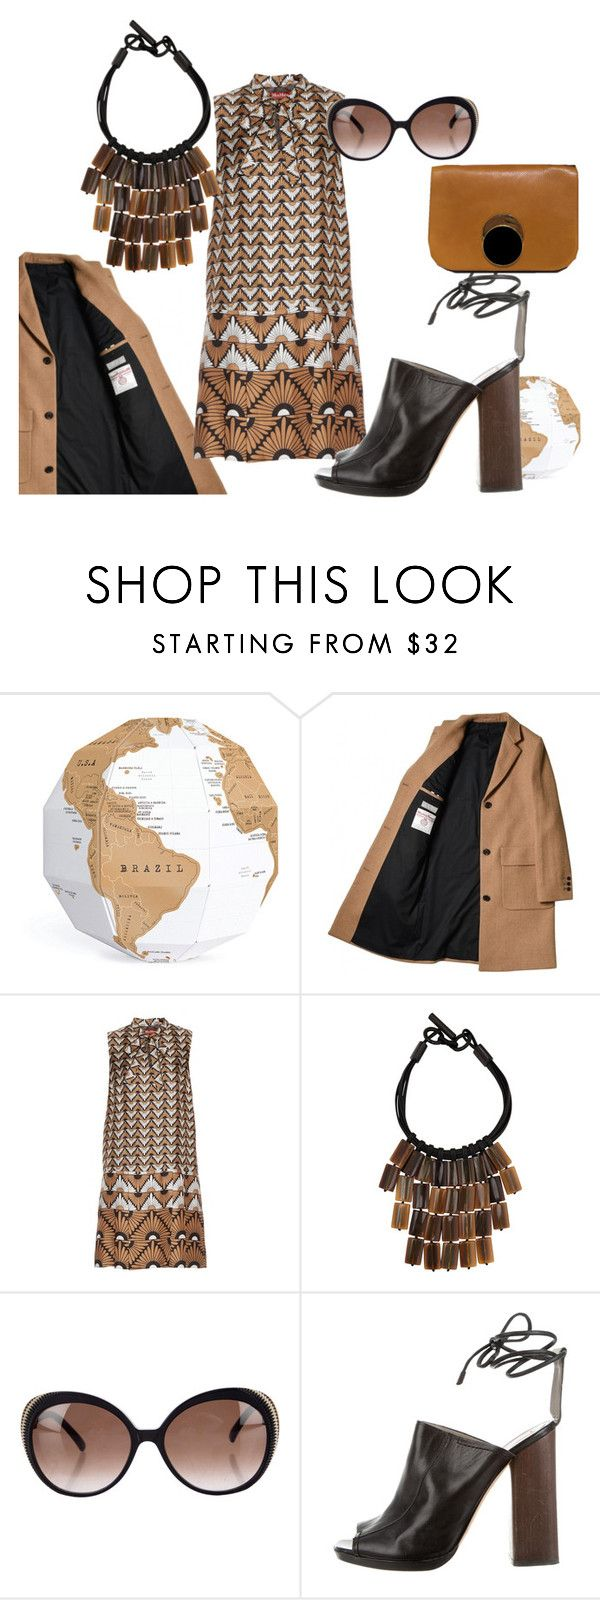 """brown"" by sugarmoonmama ❤ liked on Polyvore featuring Luckies, MaxMara, Nest, Alexander McQueen, Reed Krakoff and Marni"